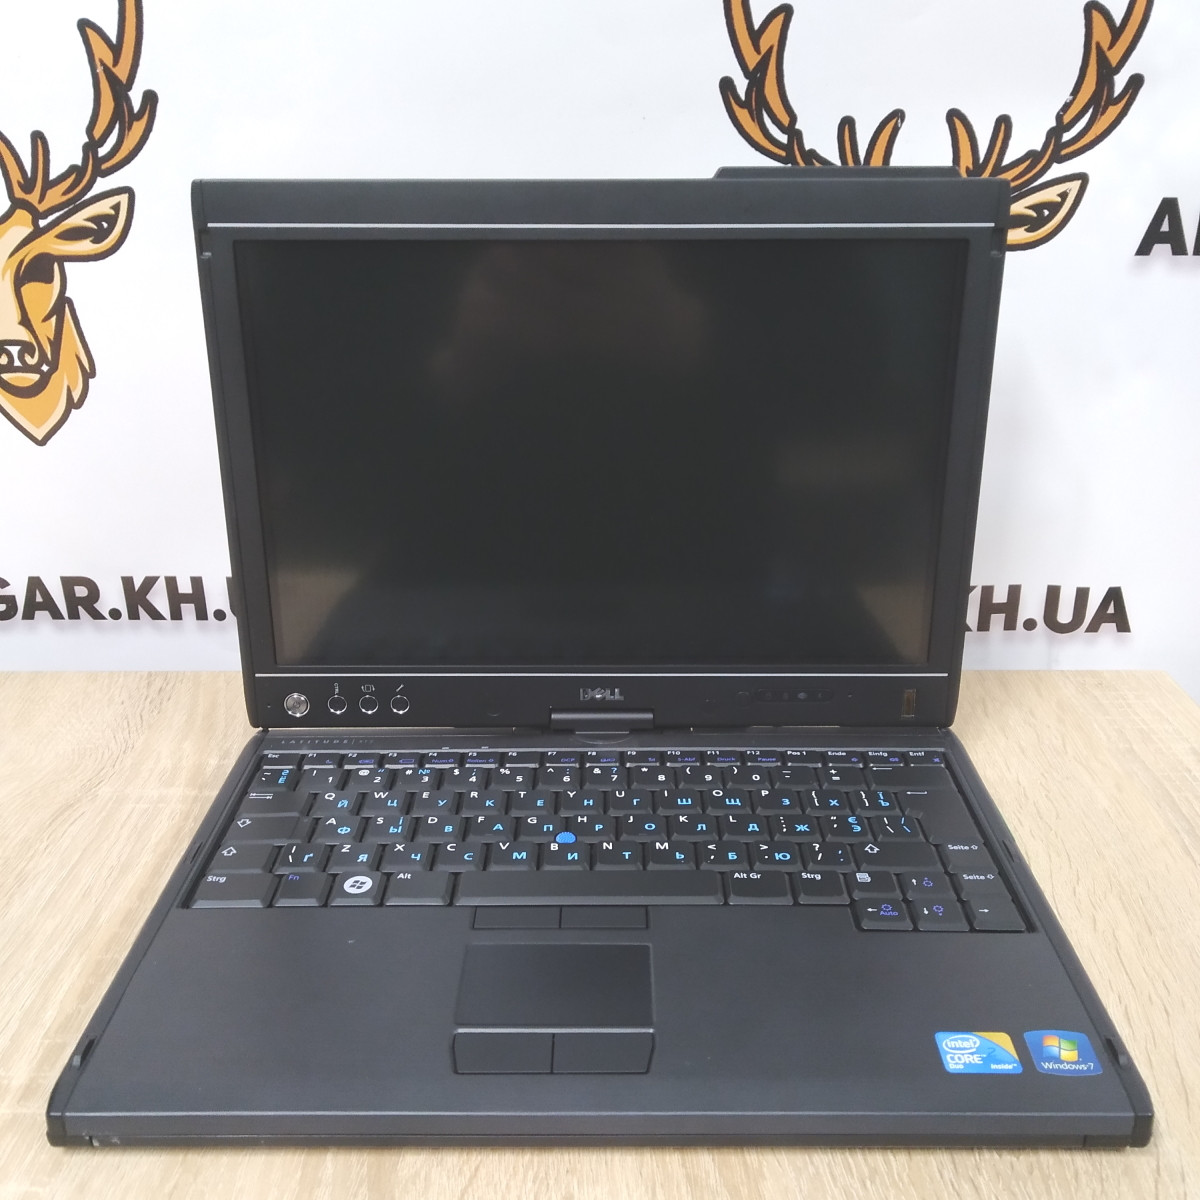 "Ноутбук трансформер 12.1"" Dell Latitude XT2 (Intel Core2Duo u9600/DDR3)"